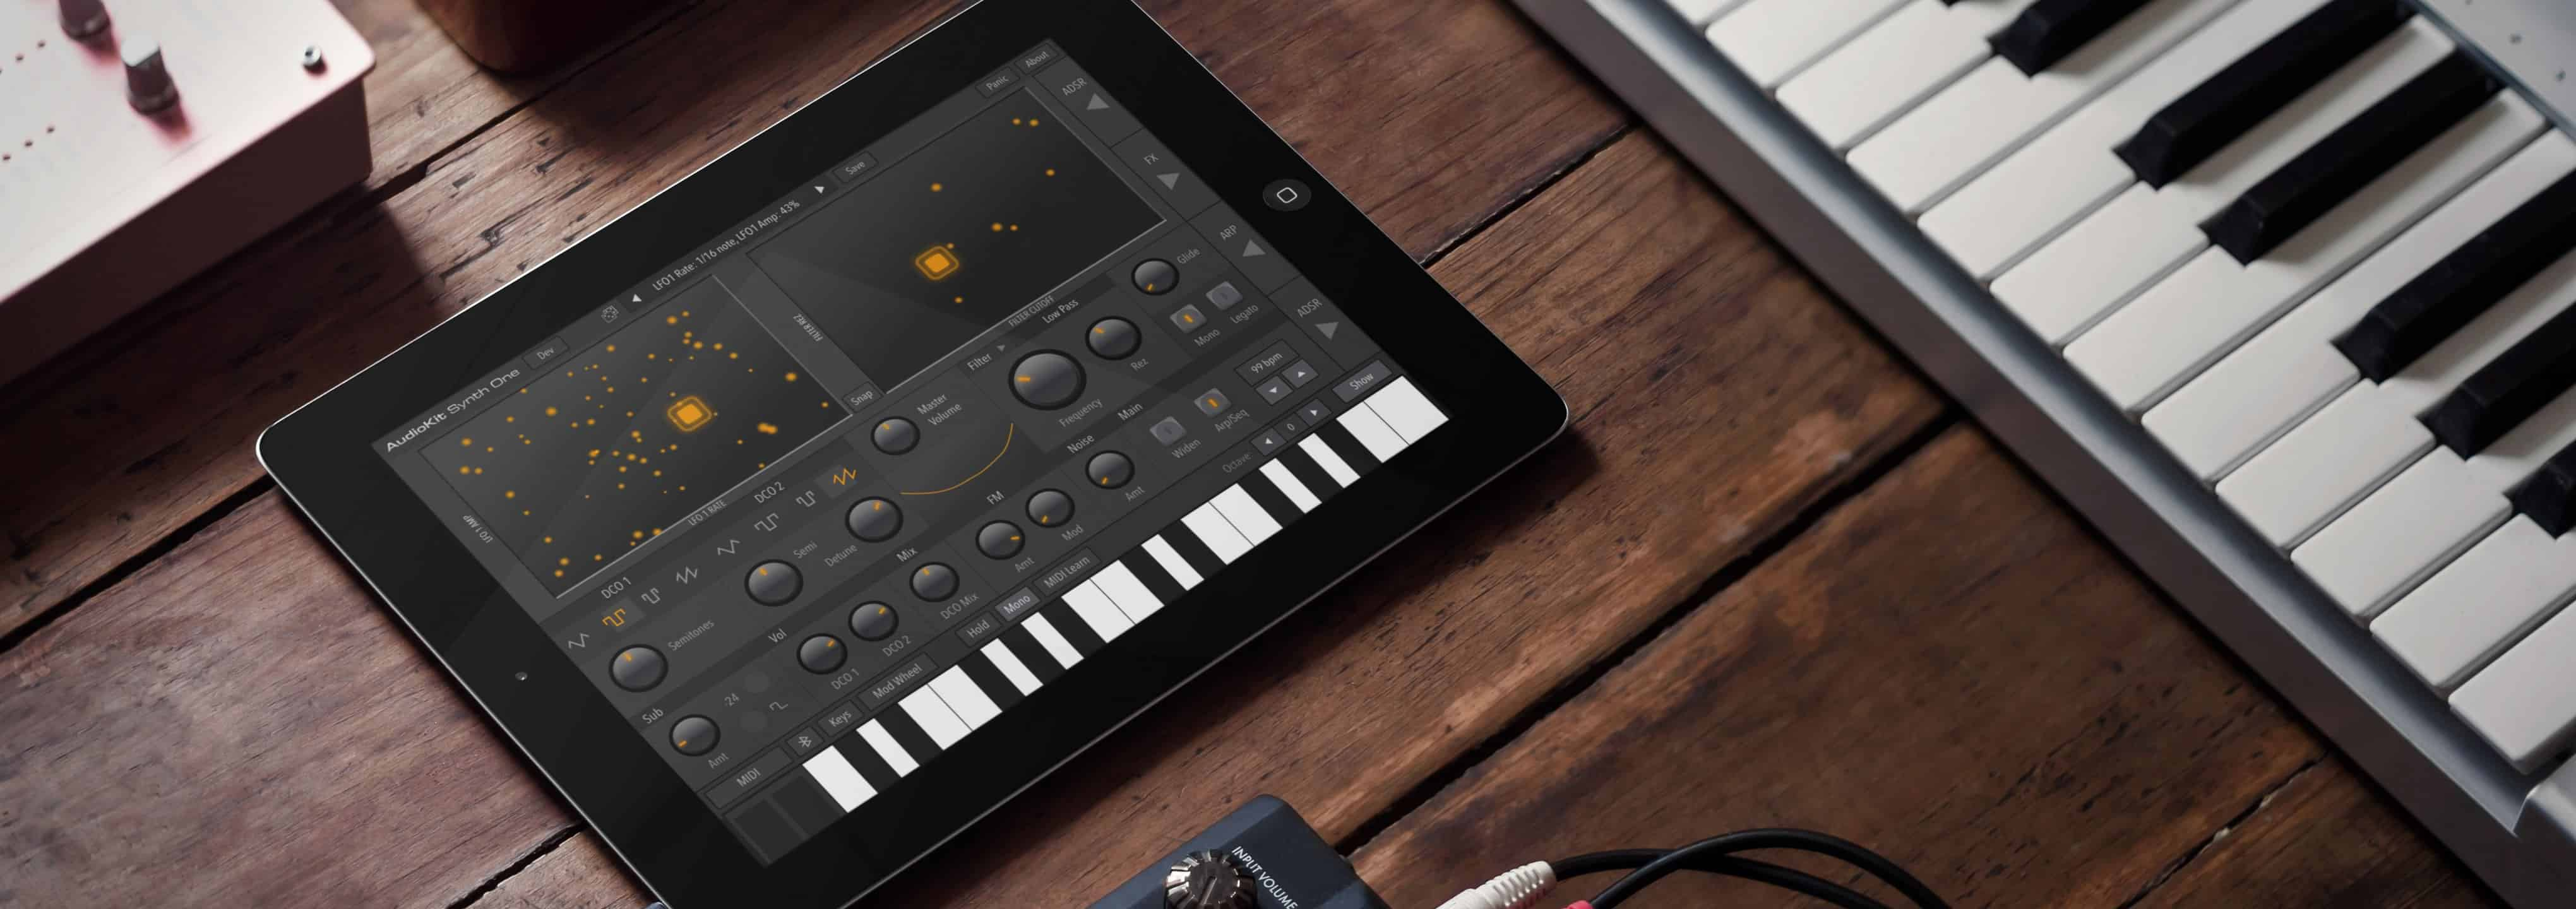 Synth One is an incredible synth app for iOS.